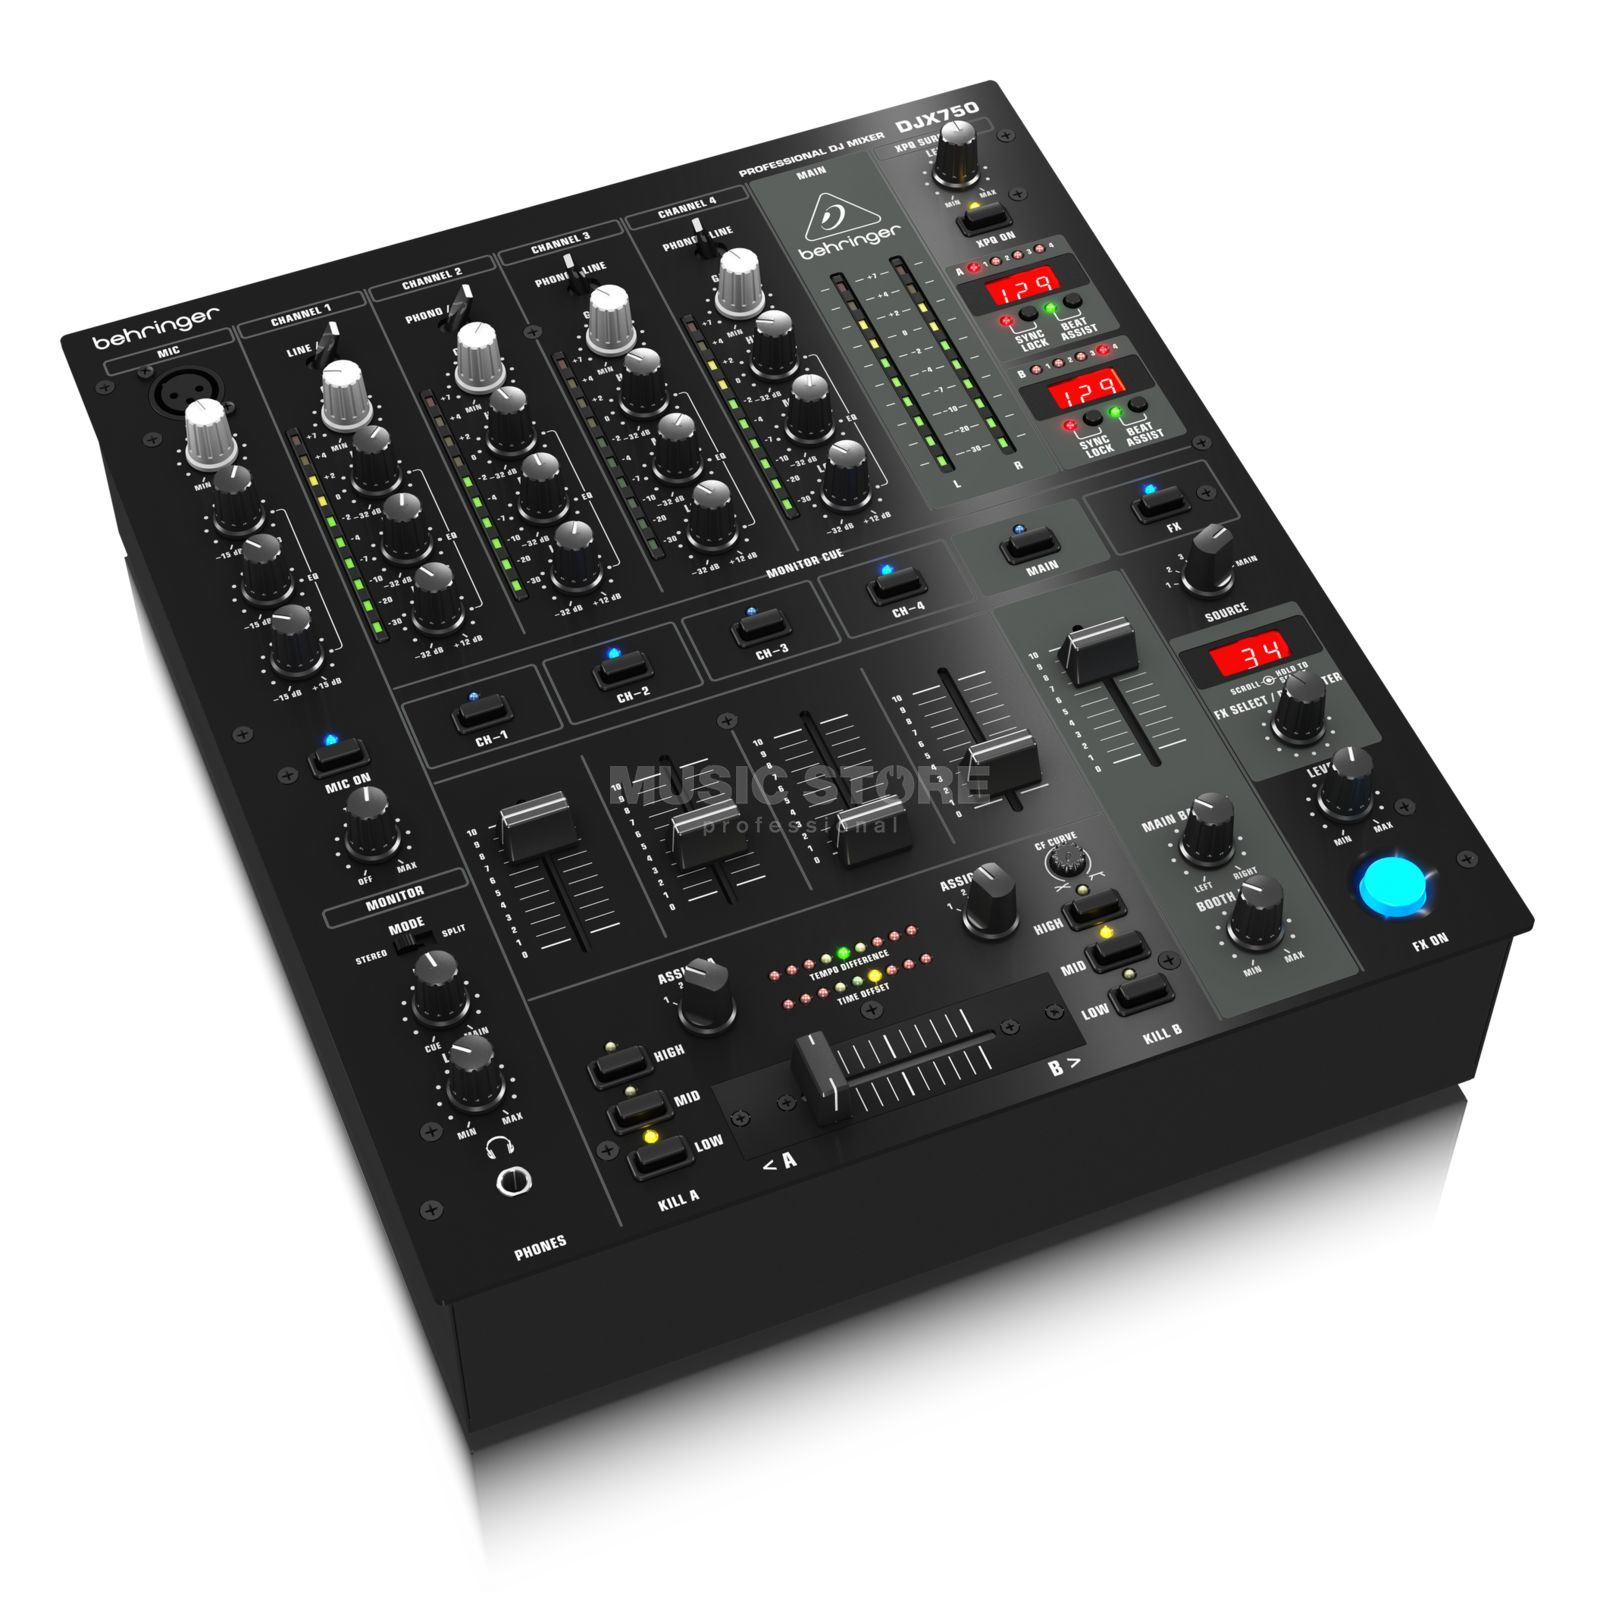 behringer djx 750 table de mixage dj 5 canaux digital. Black Bedroom Furniture Sets. Home Design Ideas